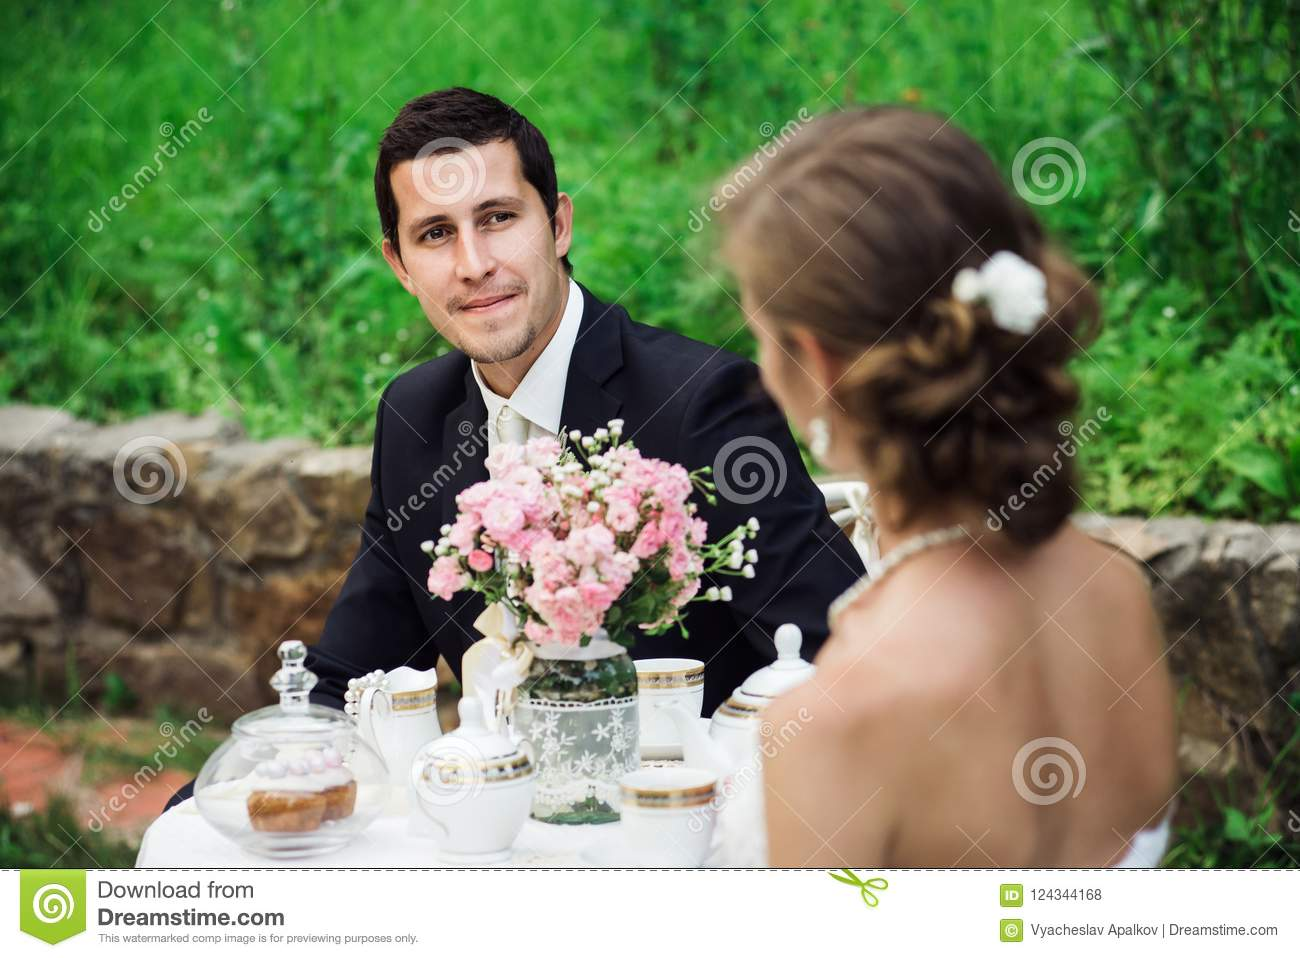 Young groom looking delighted at his bride